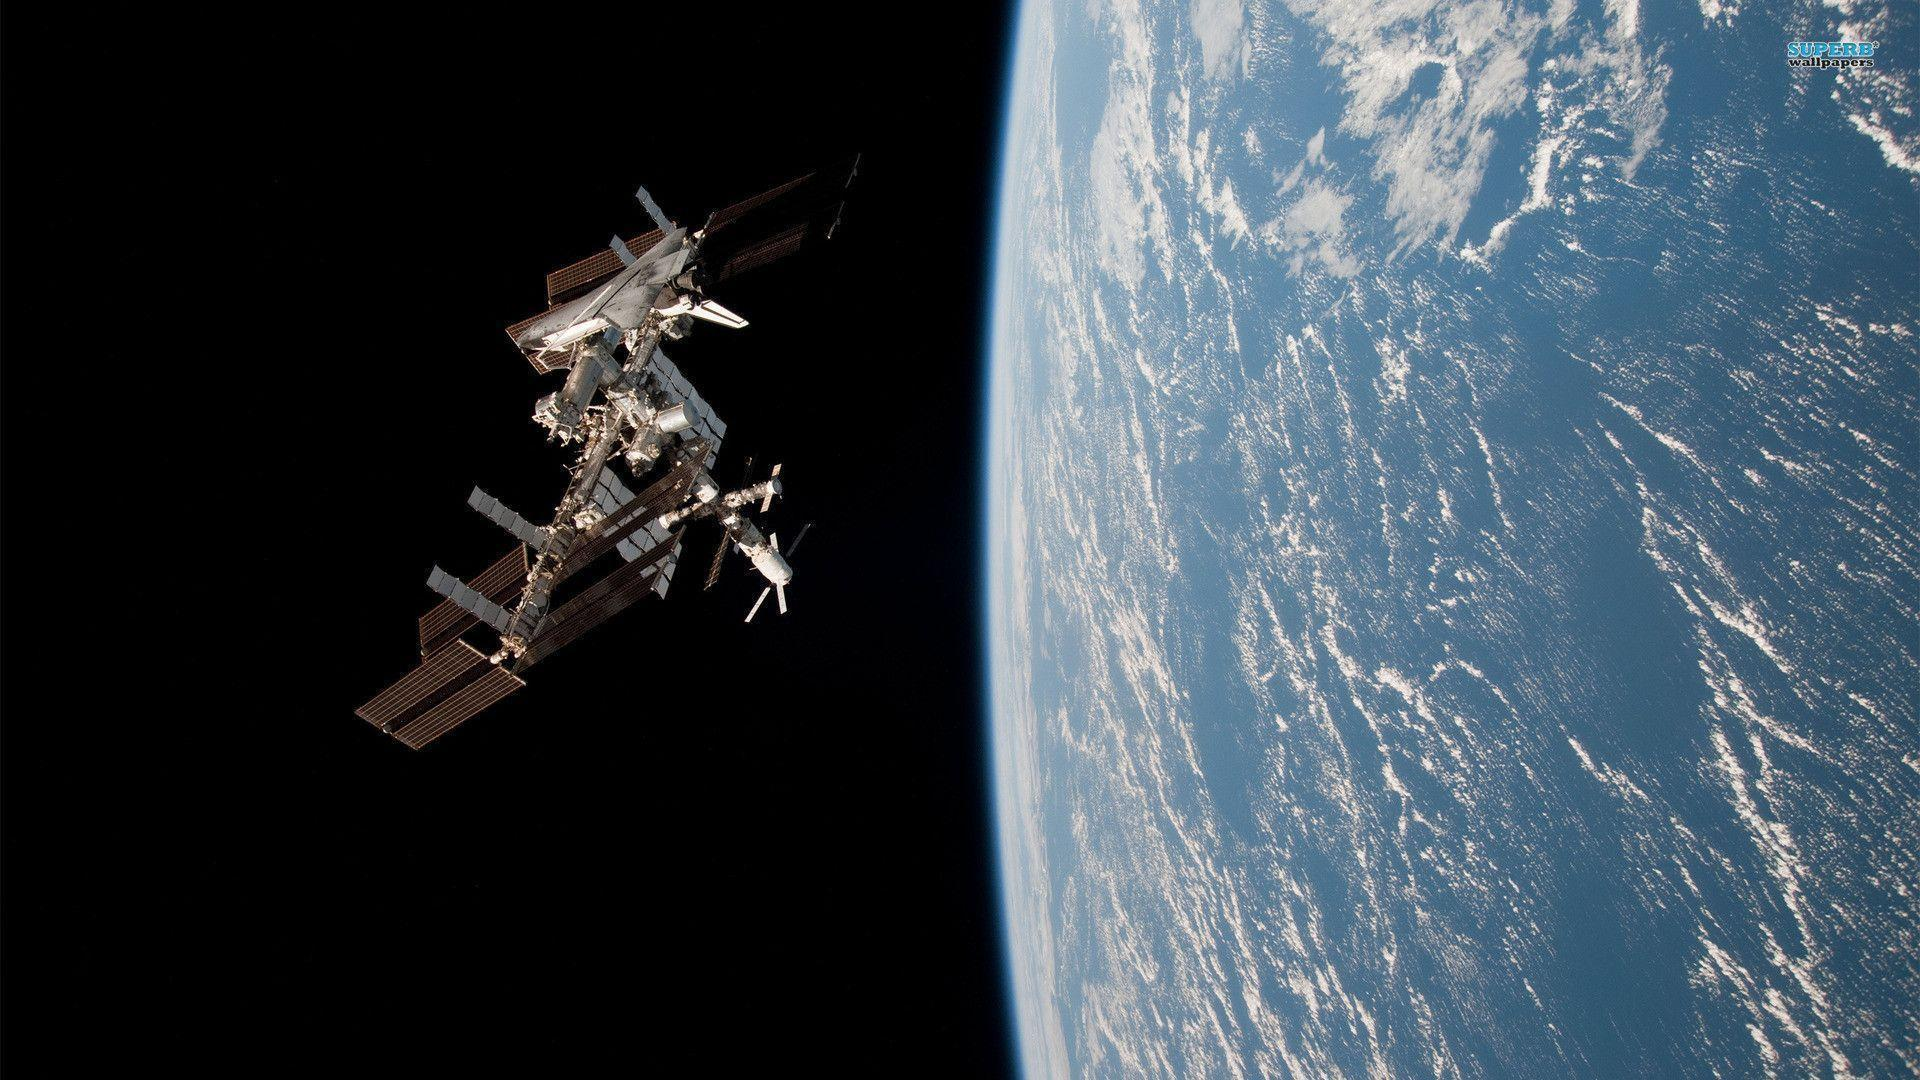 32 space station hd - photo #21